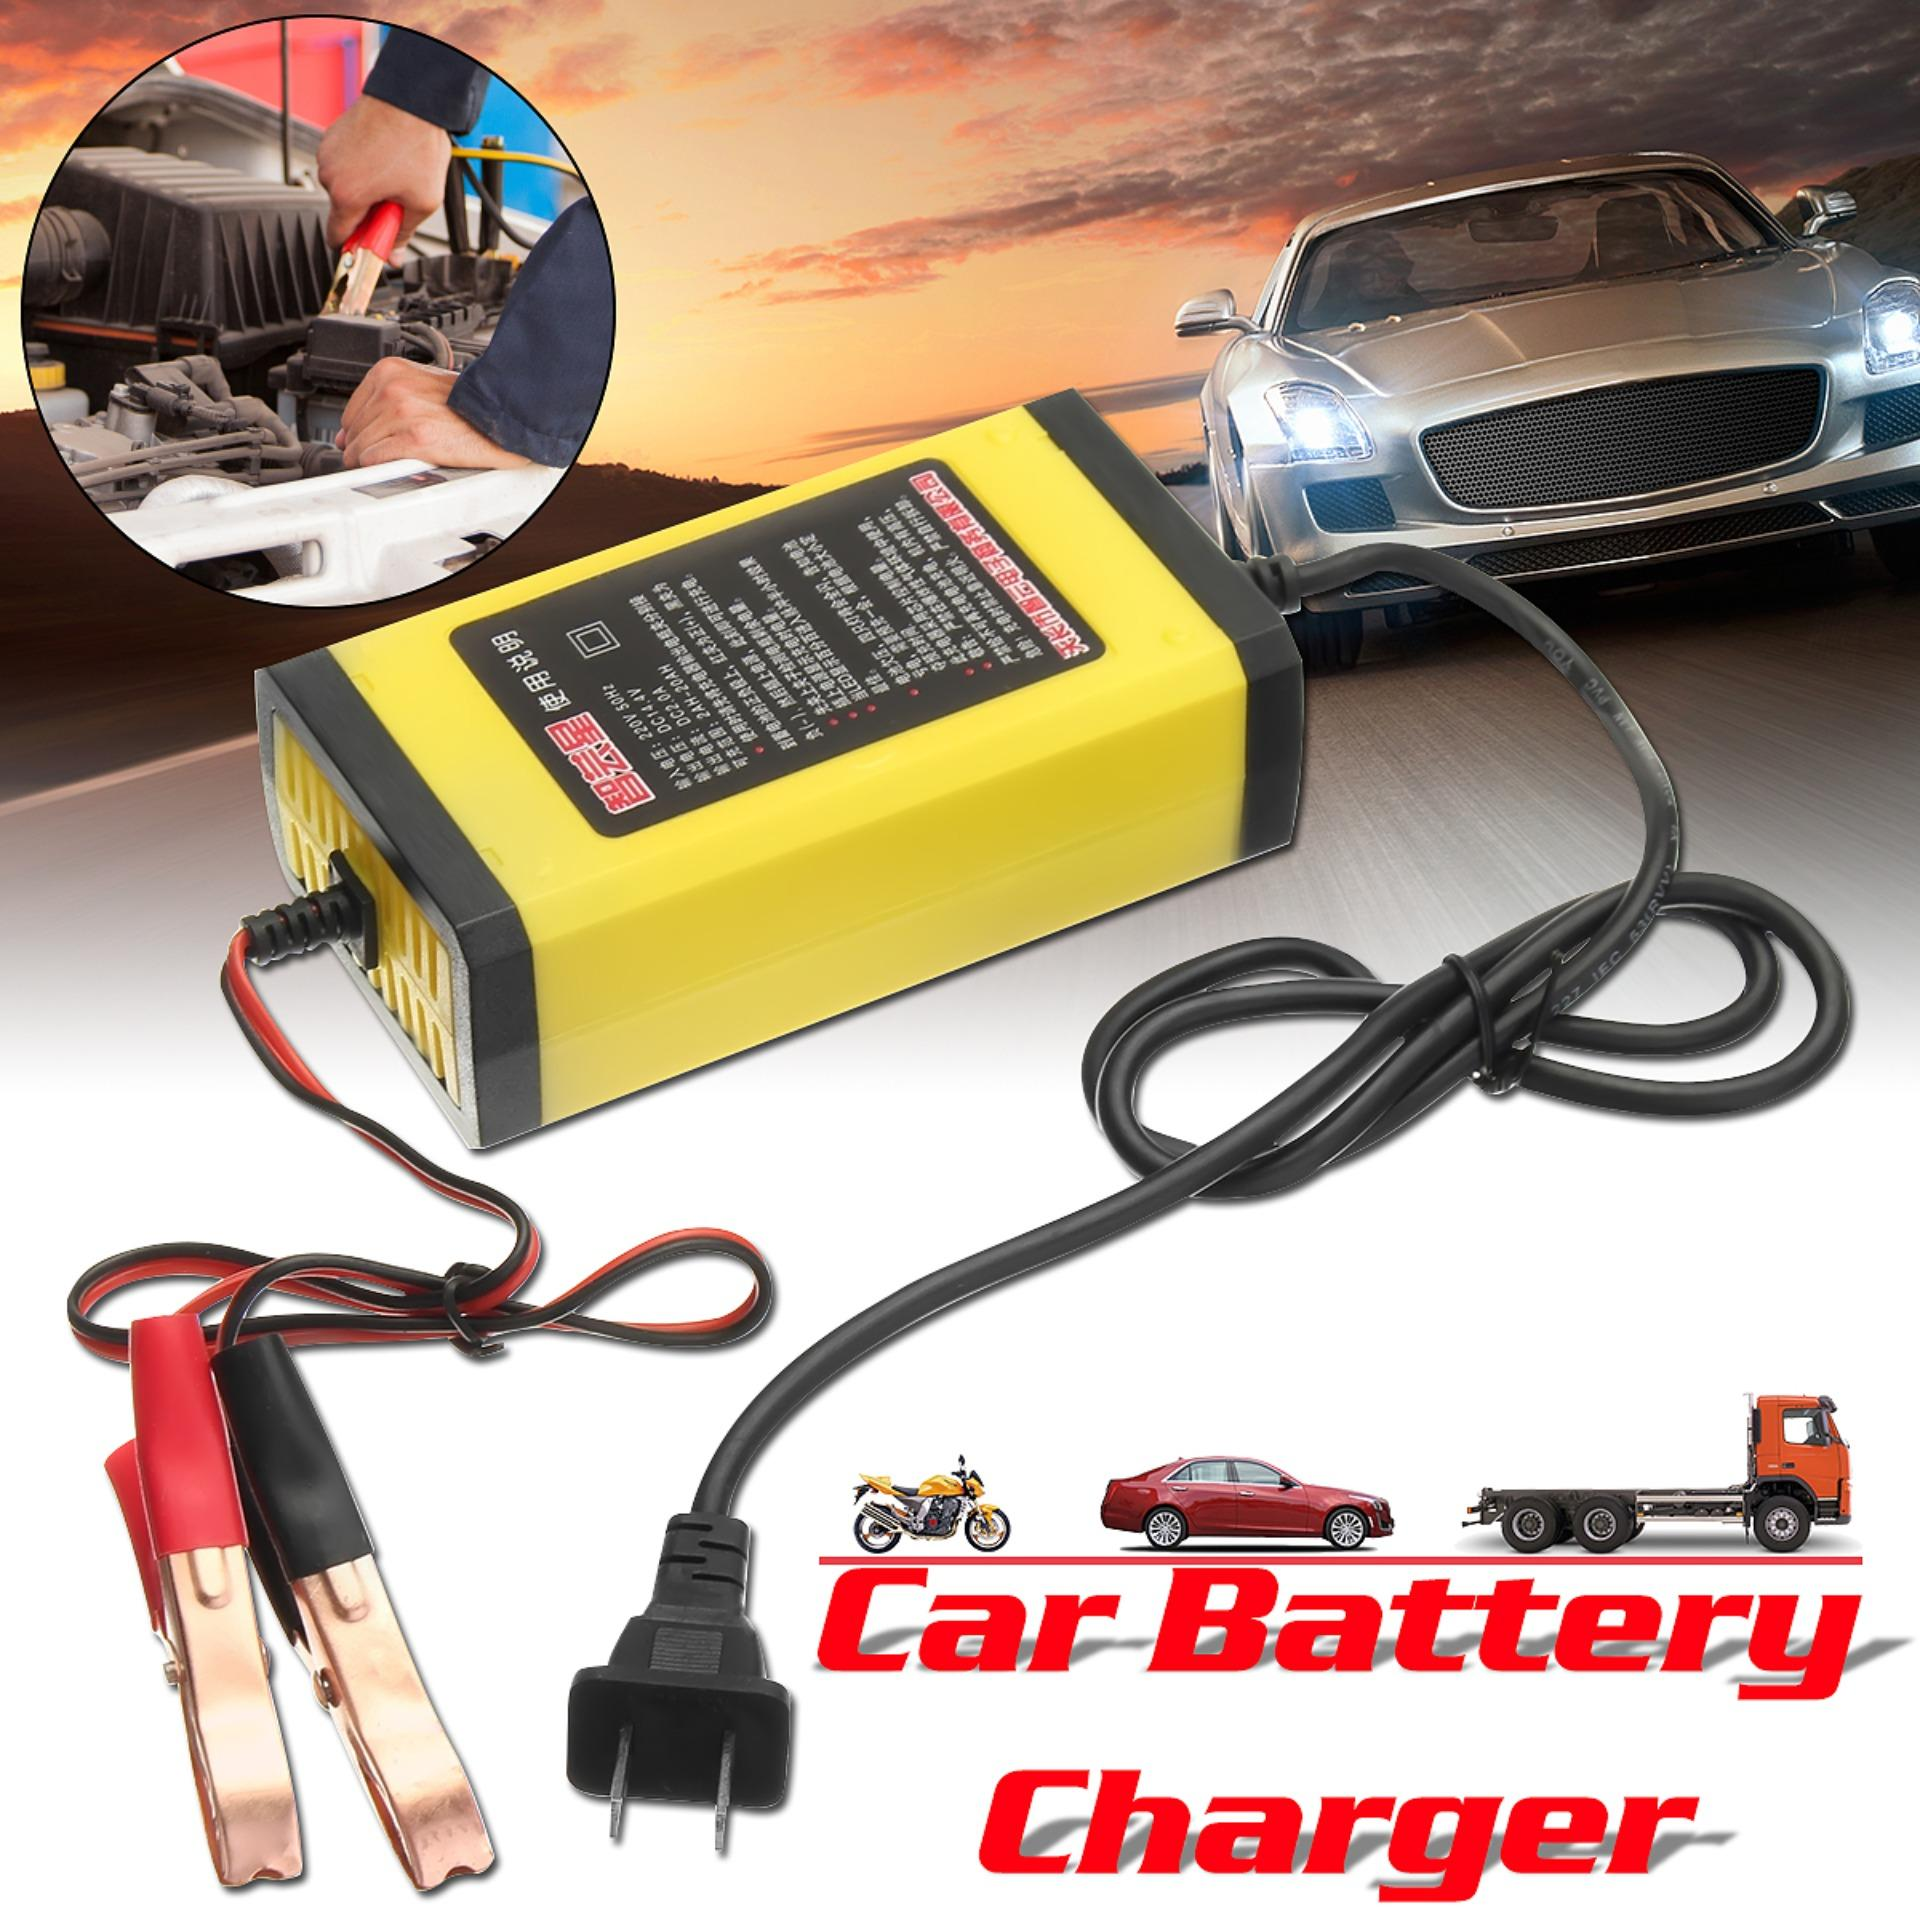 【Free Shipping + Super Deal + Limited Offer】ABS 12V 2AH-20AH Car Motorcycle  Smart Automatic Battery Charger Maintainer - intl